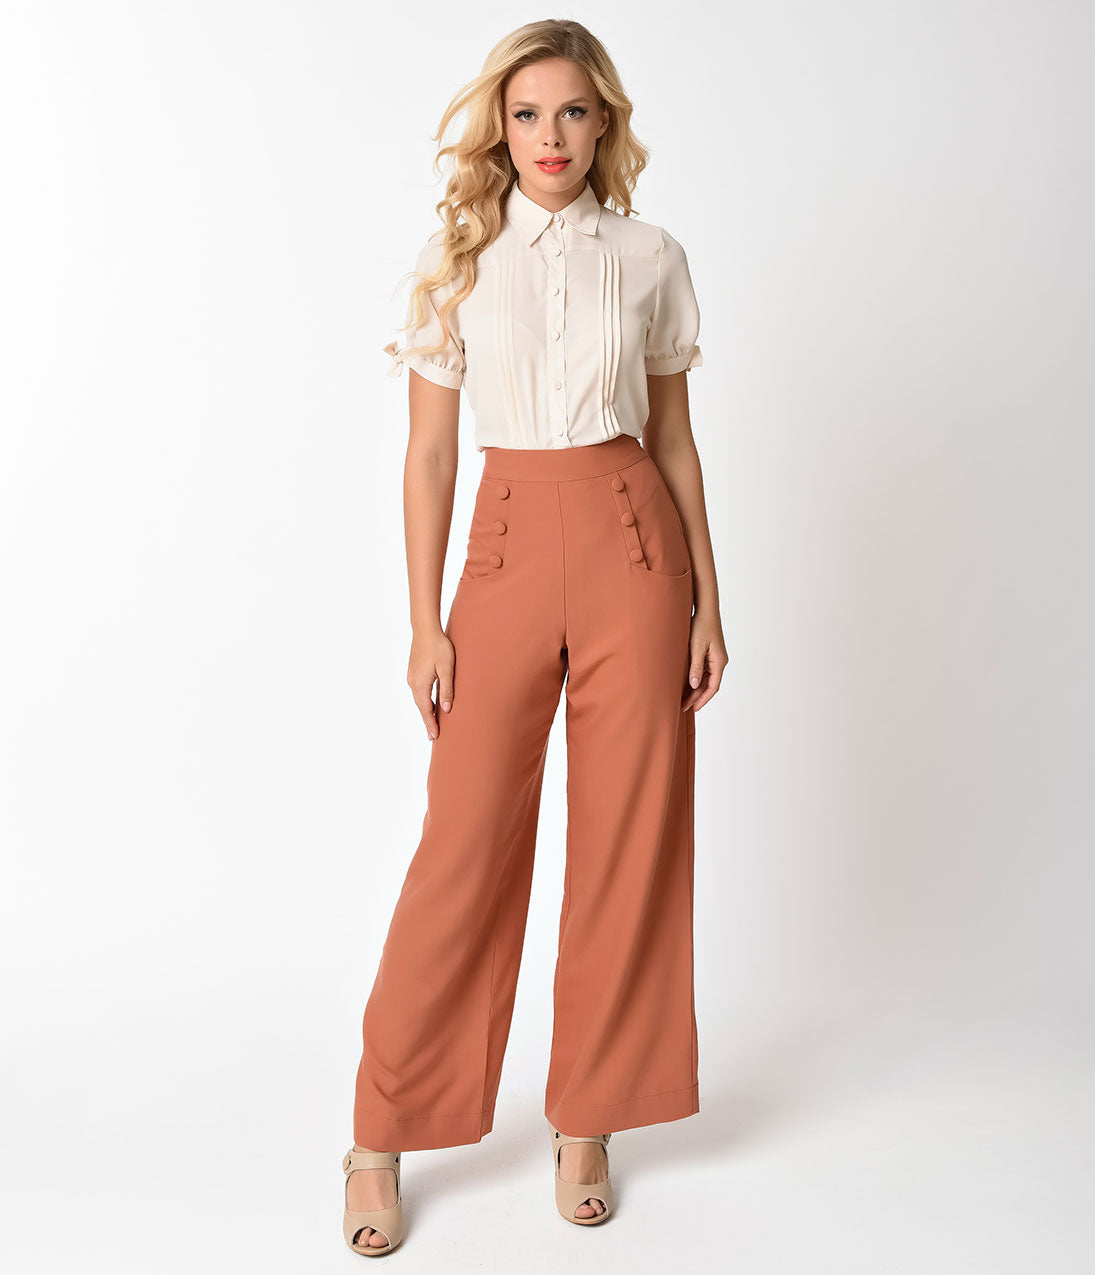 Vintage High Waisted Trousers, Sailor Pants, Jeans Unique Vintage 1940s Style Cinnamon Brown High Waist Sailor Ginger Pants $62.00 AT vintagedancer.com